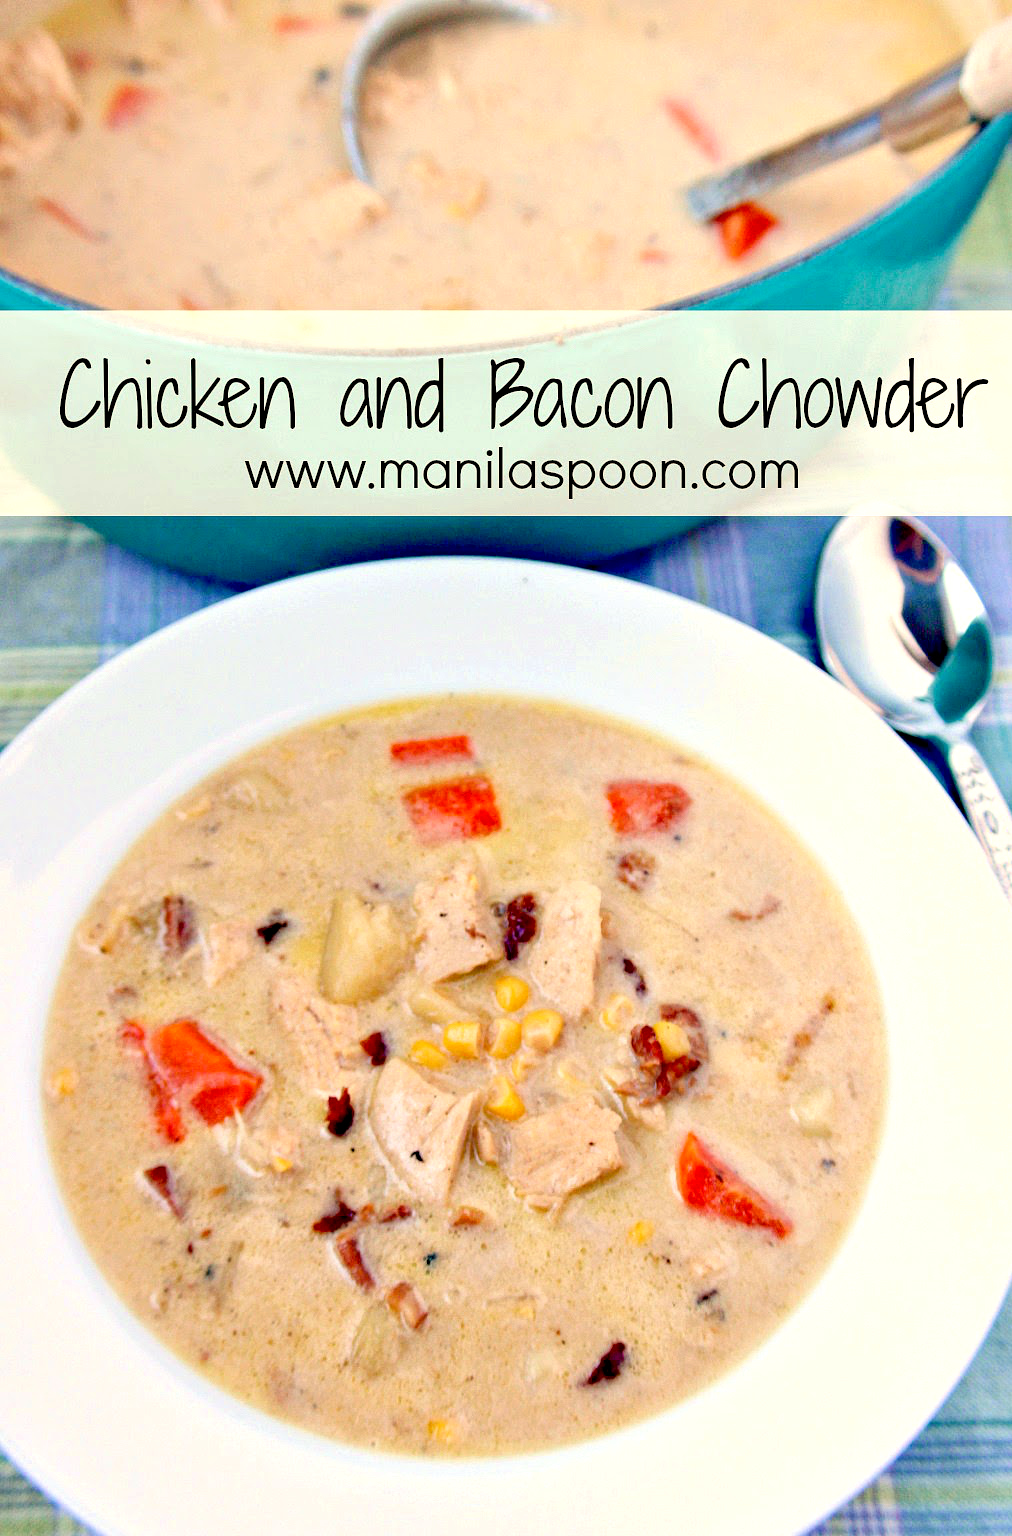 Lots of chicken and vegetables, flavored with bacon and so creamy-licious is this Chicken and Bacon Chowder!